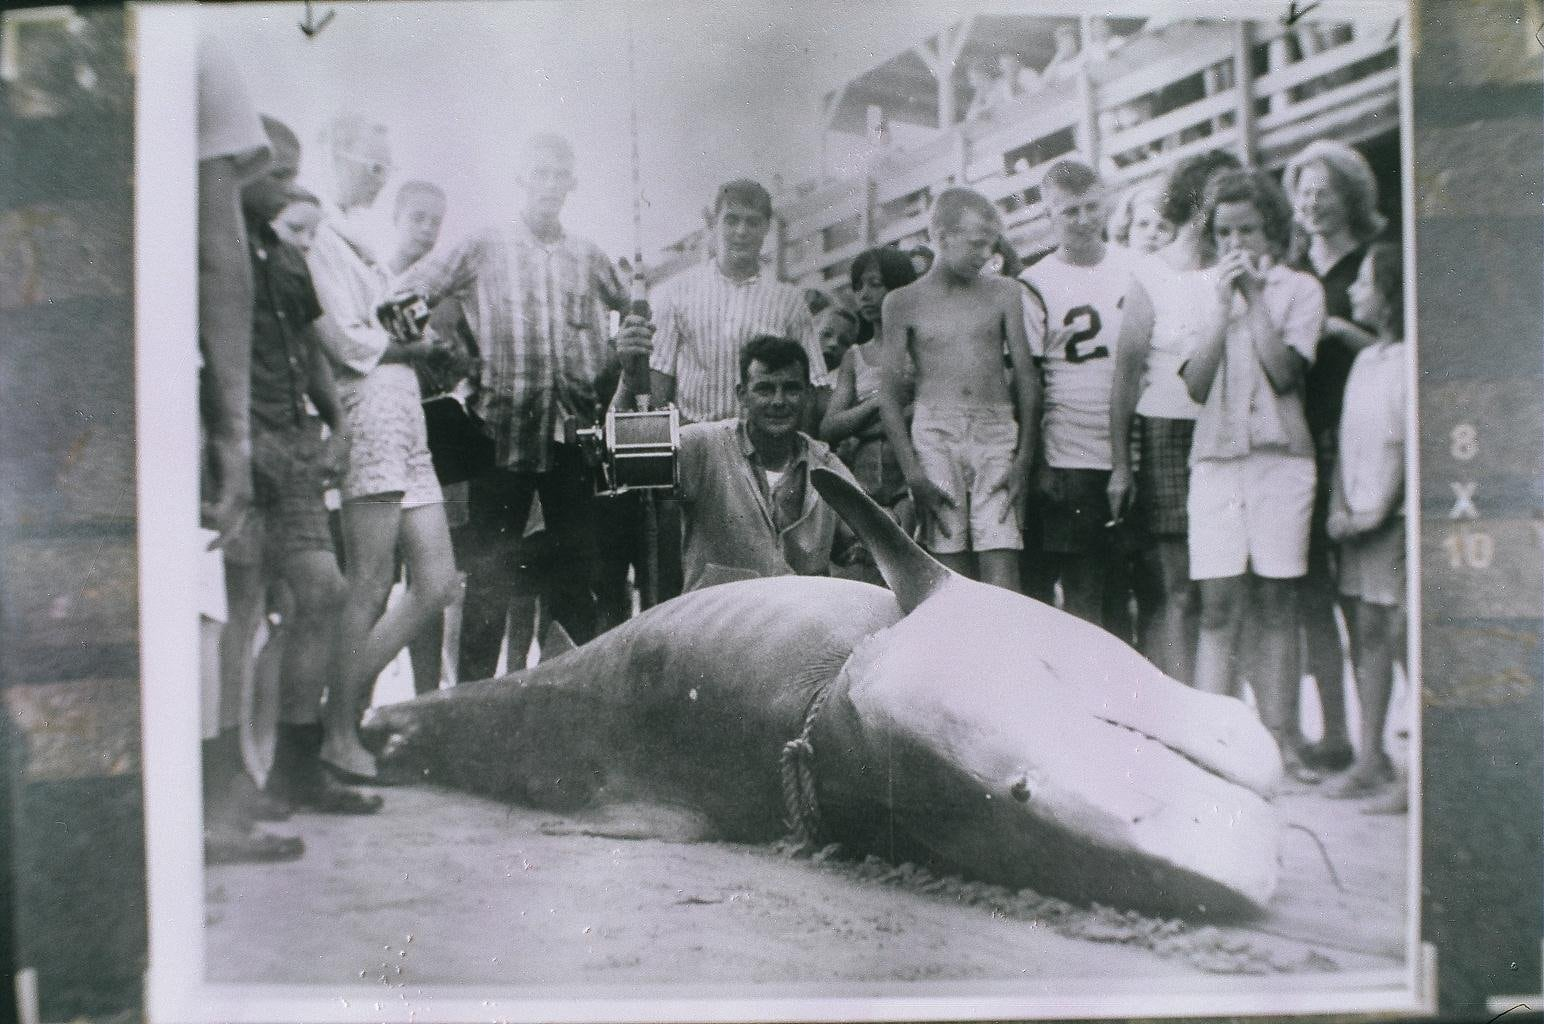 An old black and white photo of a large shark caught on a rod.